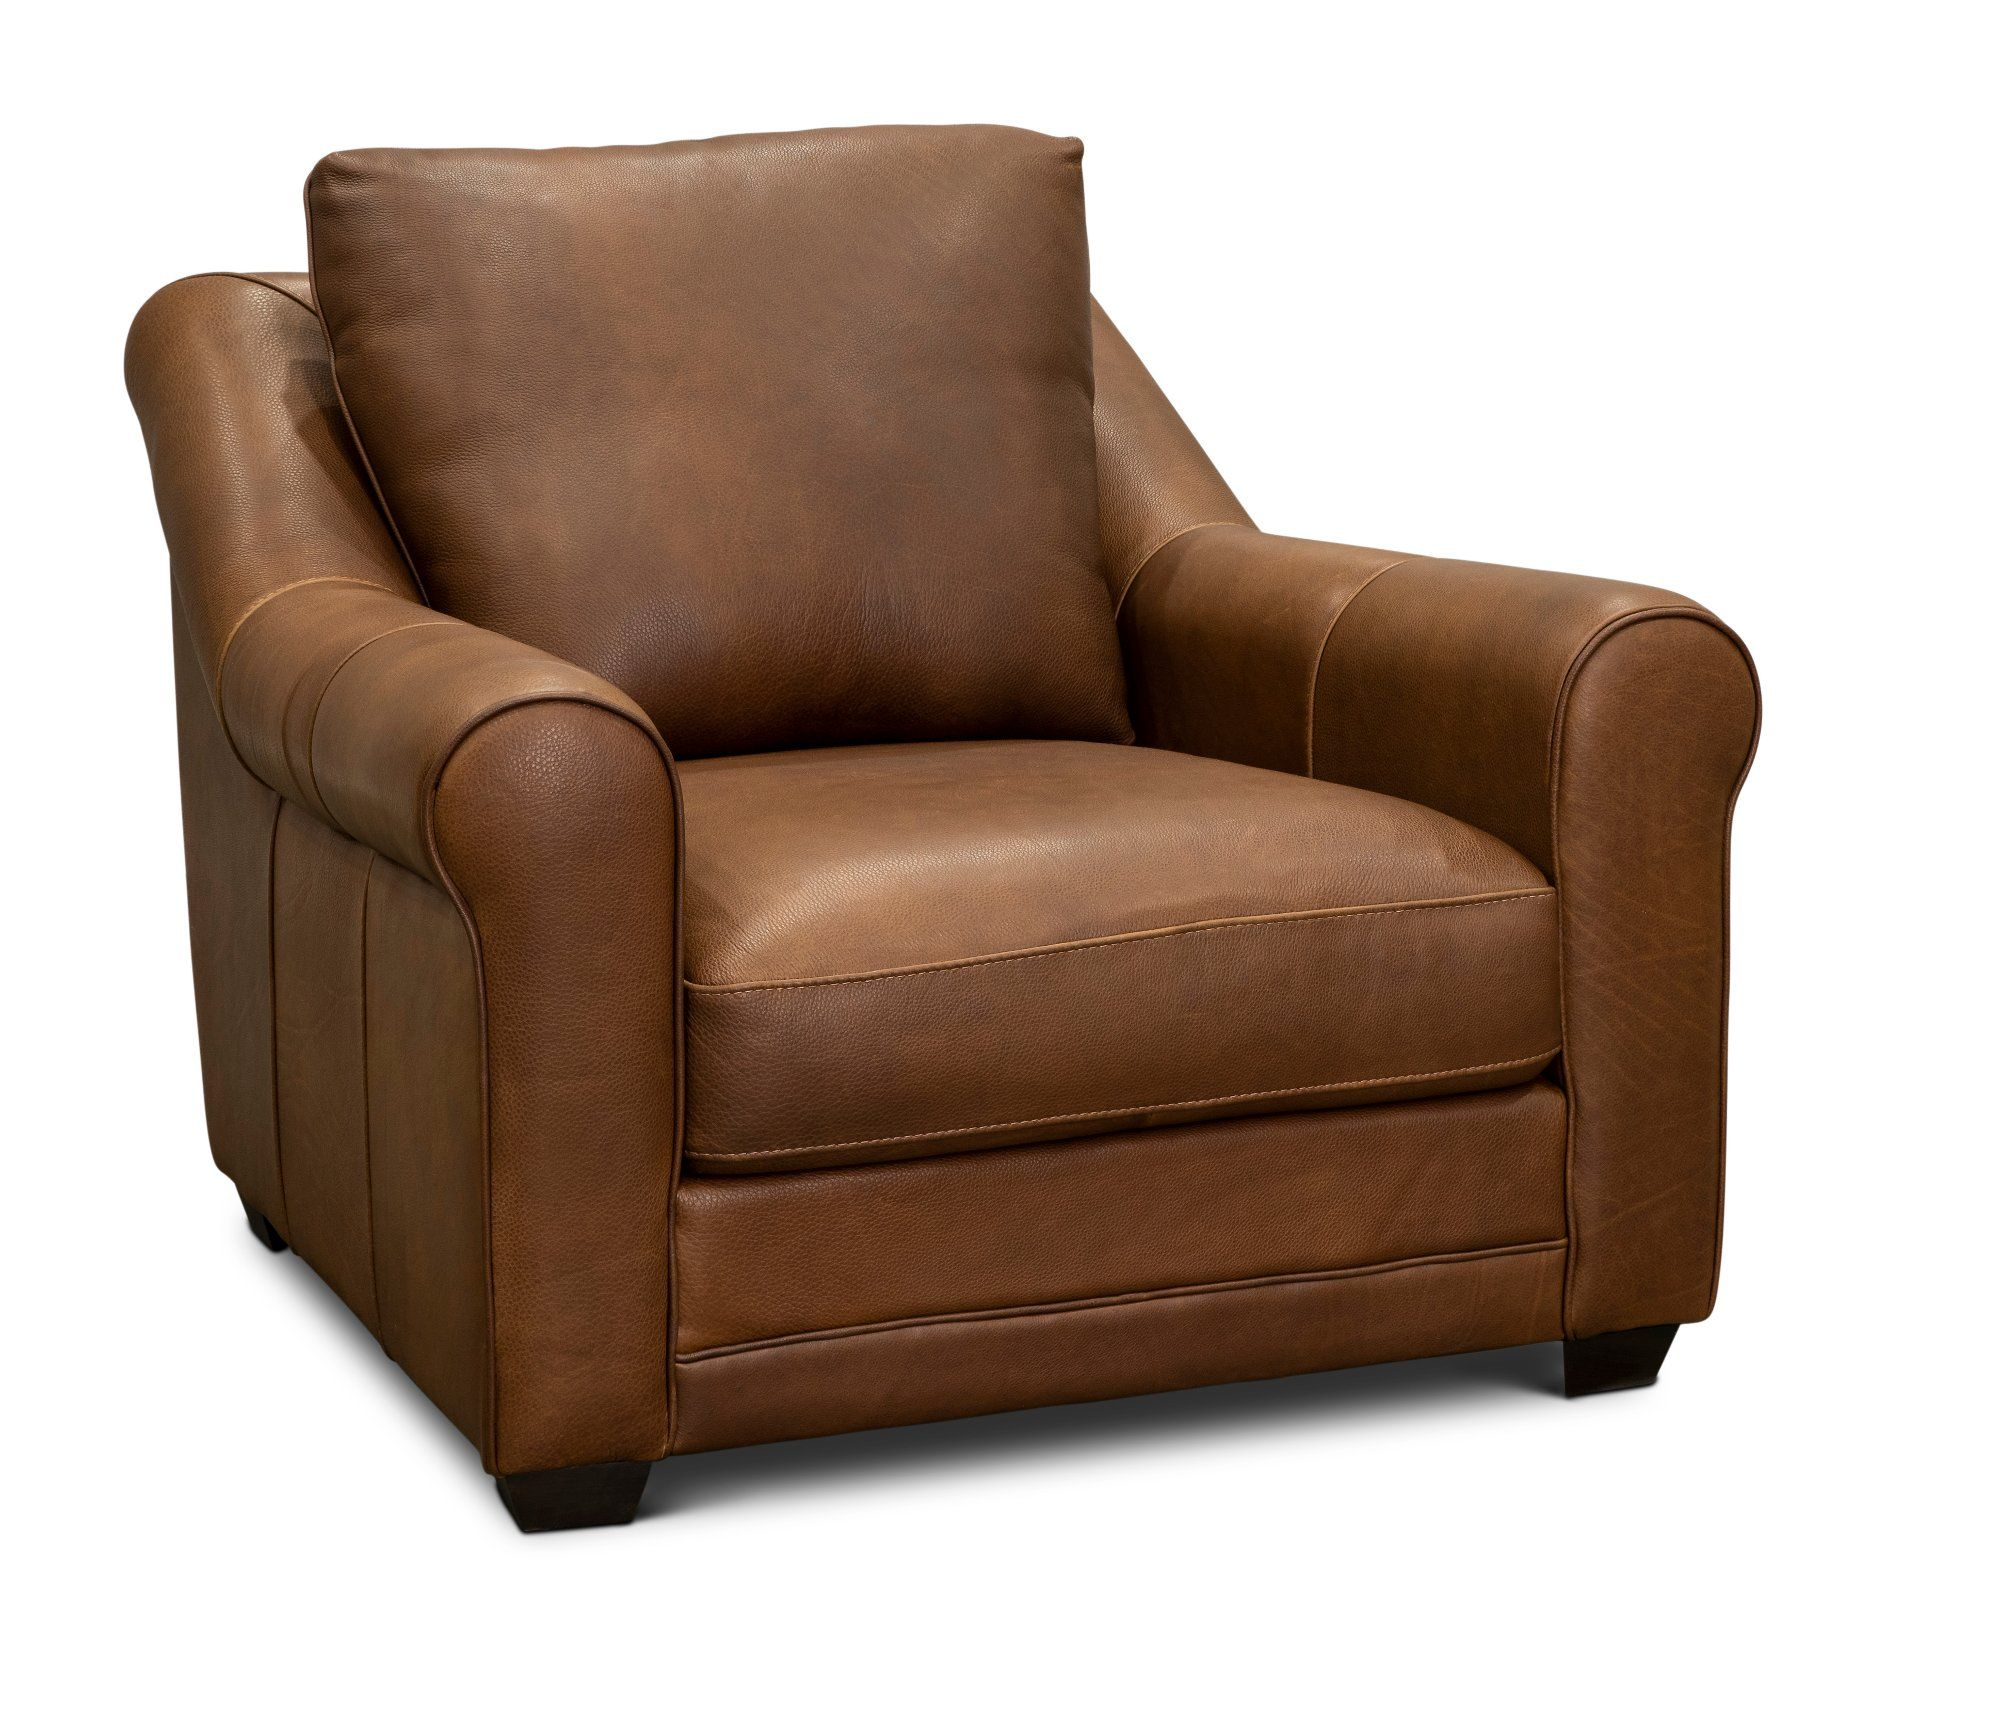 Contemporary Brown Leather Chair Panama In 2020 Brown Leather